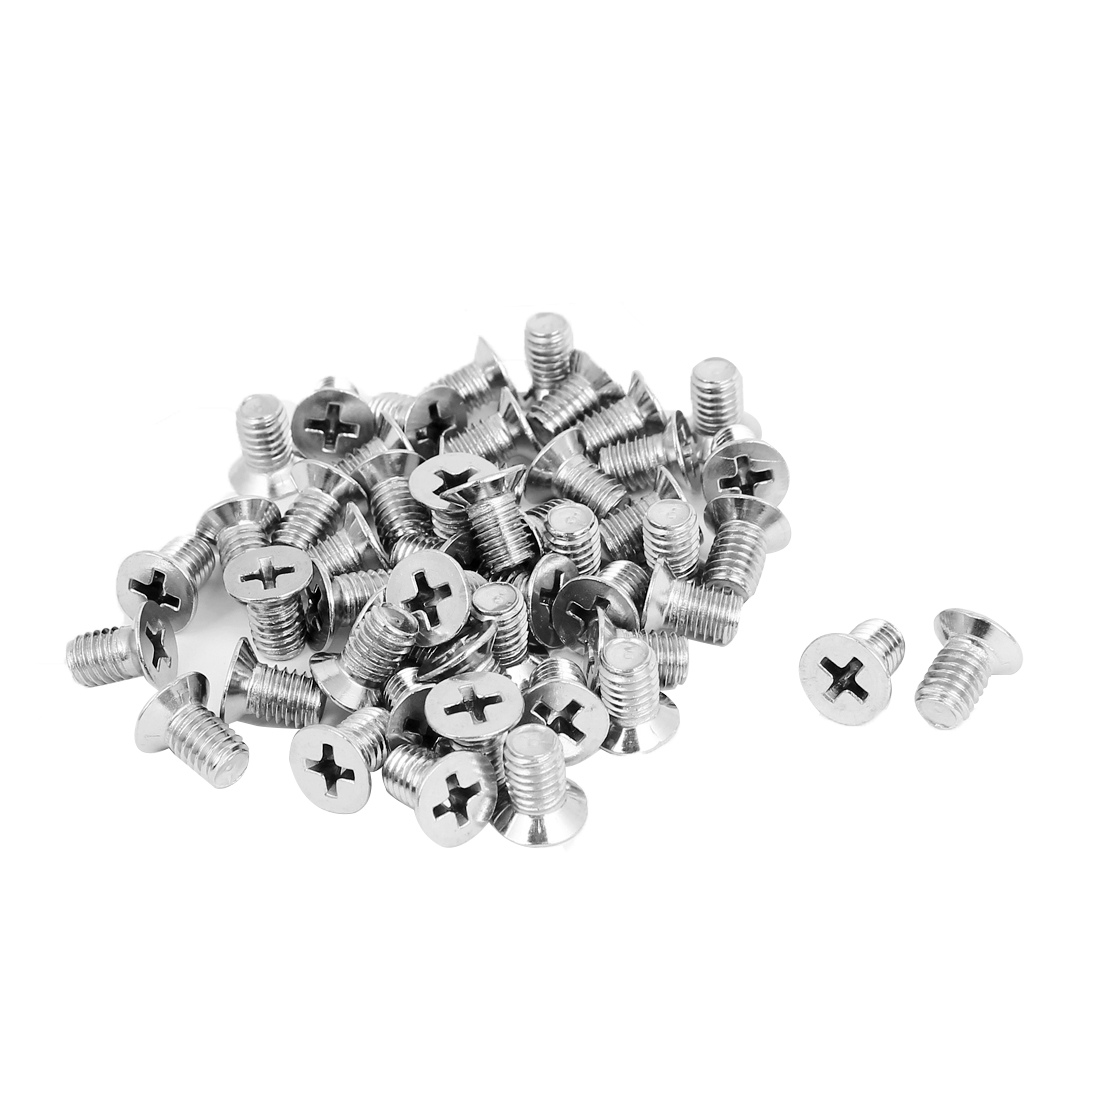 M6x10mm Stainless Steel Countersunk Flat Head Cross Phillips Screw Bolts 50pcs